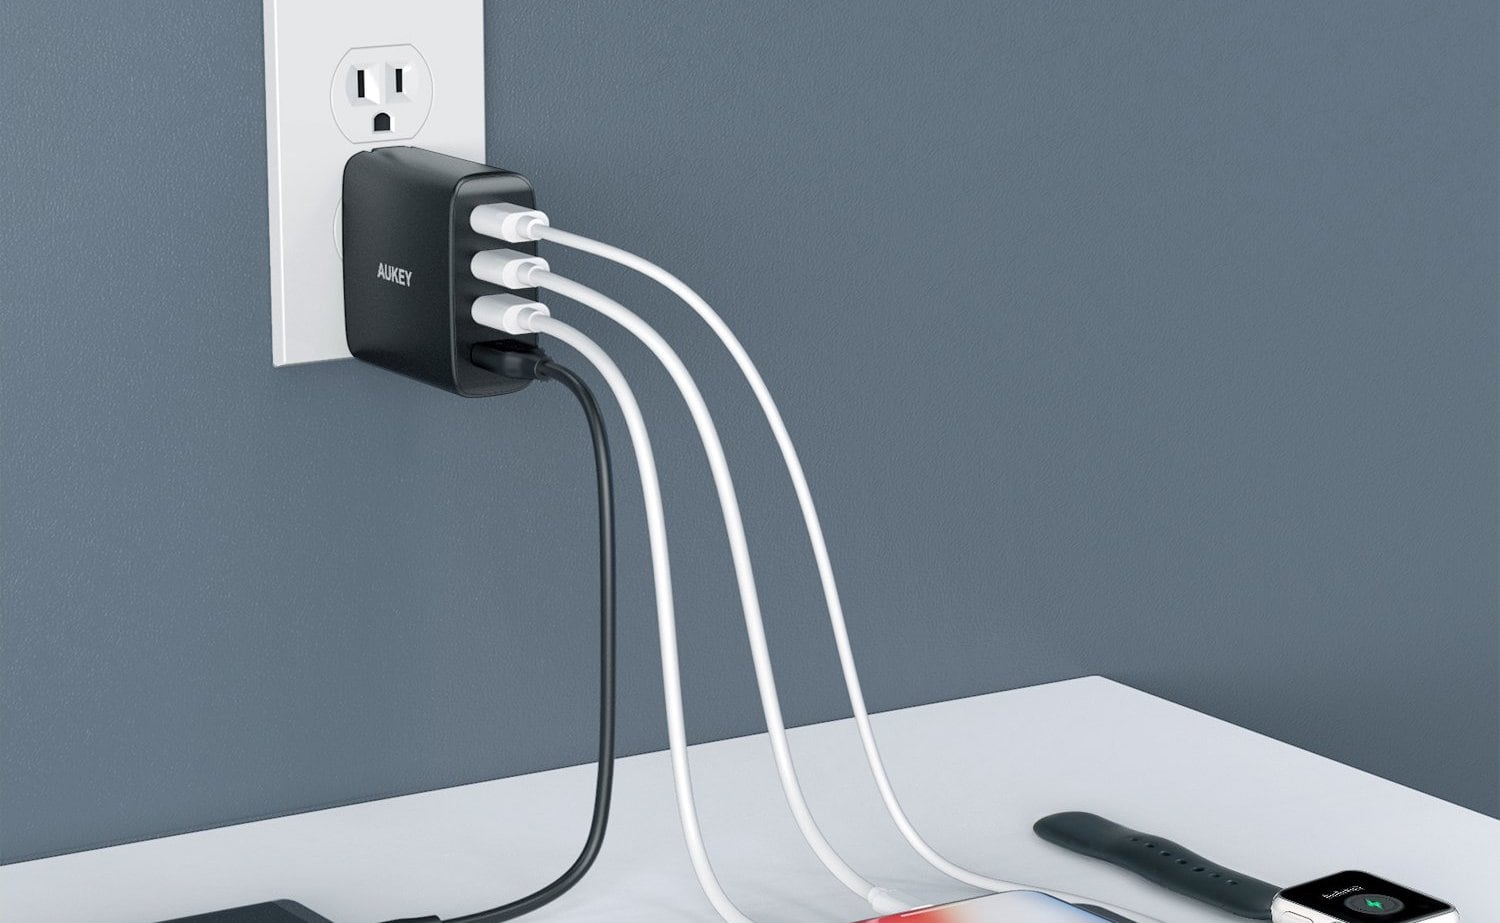 Four-port power adapter plugged into the wall and four devices